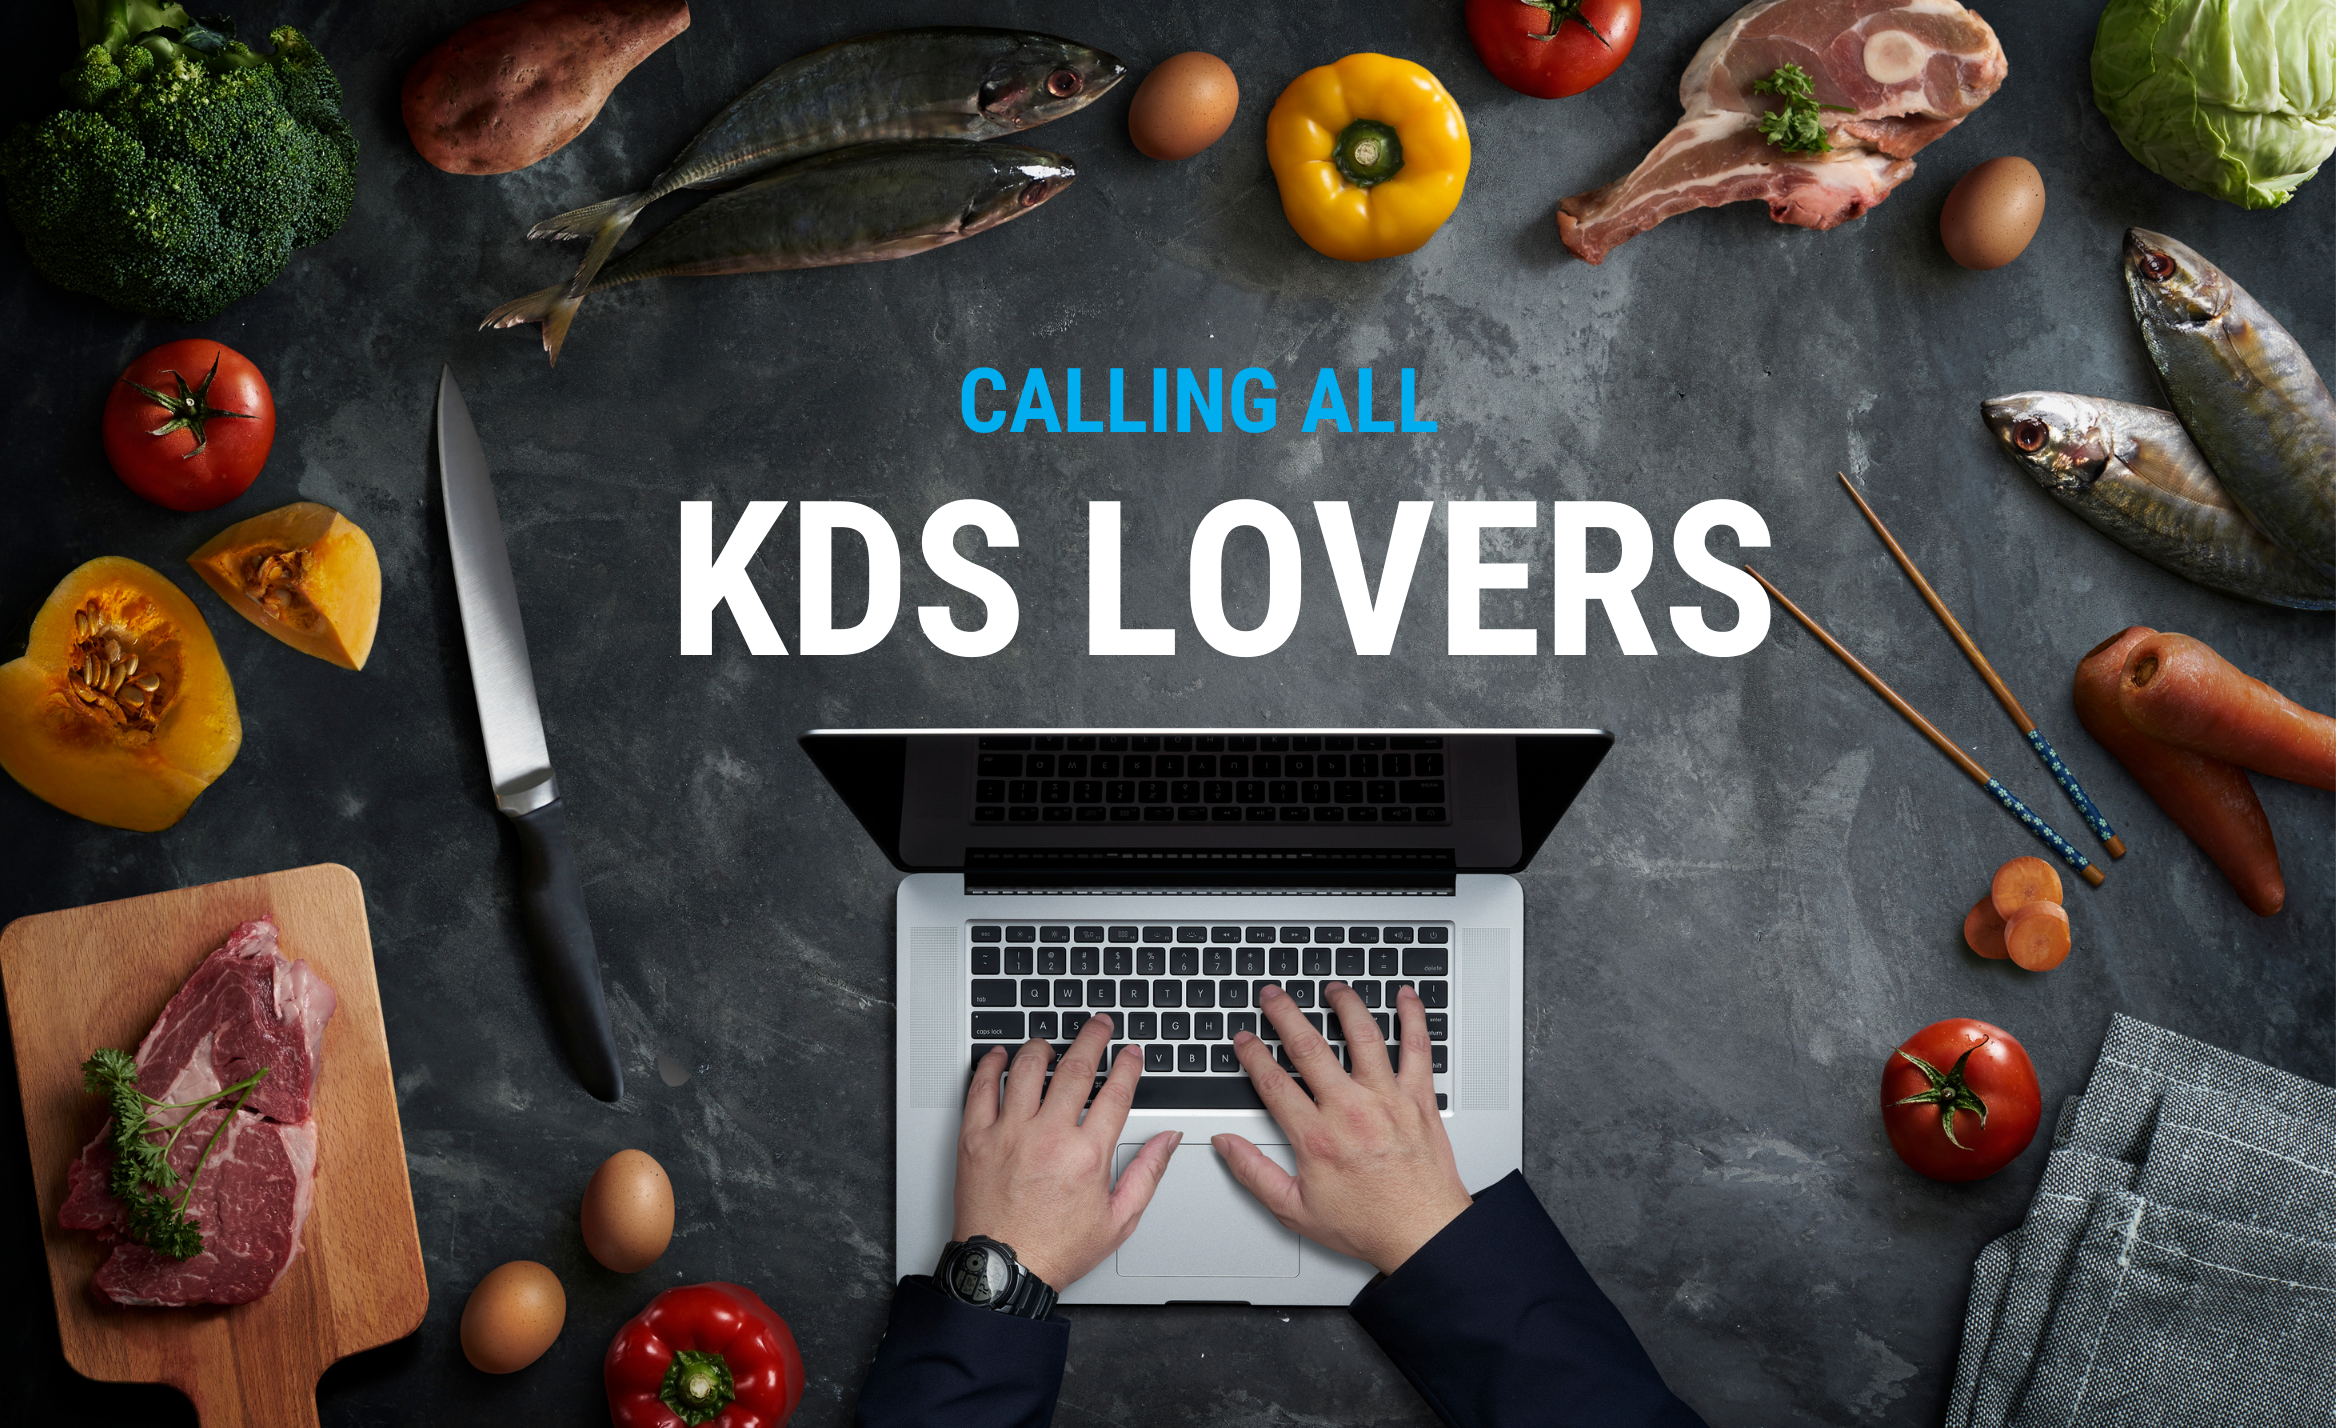 calling all KDS lovers on laptop surrounded by food and cooking utensils such as knives and a cutting board